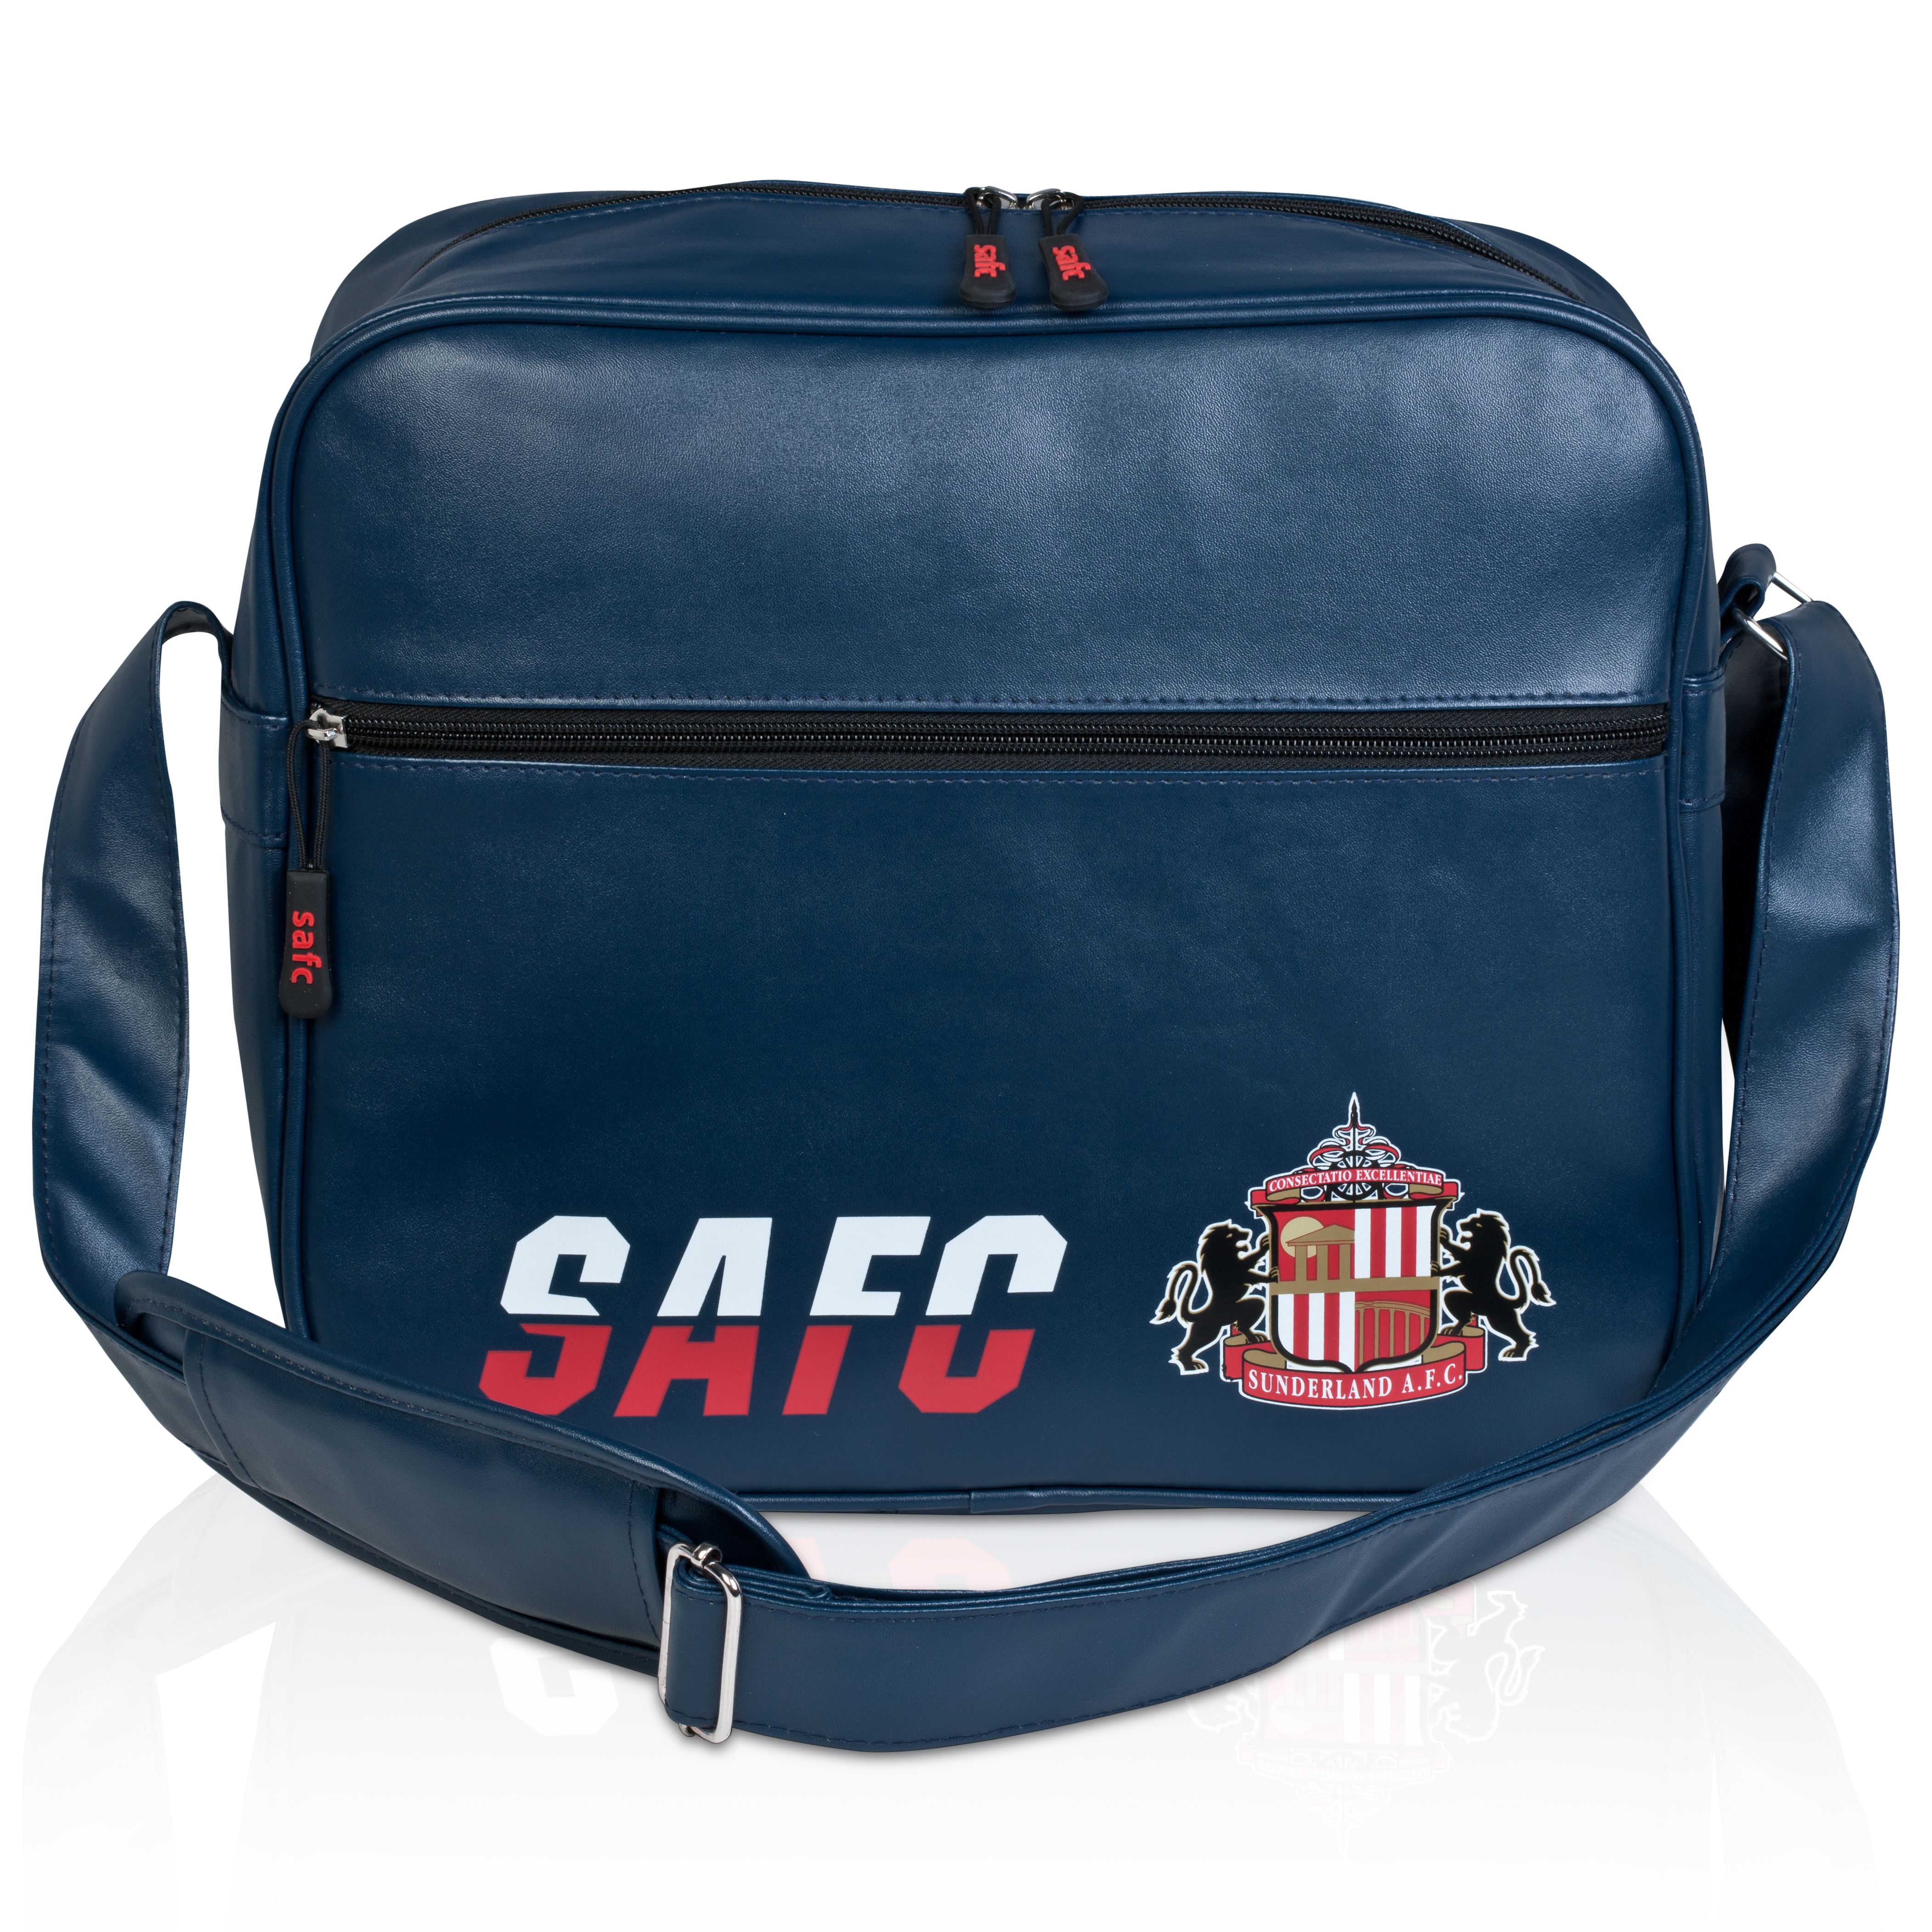 Sunderland Retro Messenger Bag